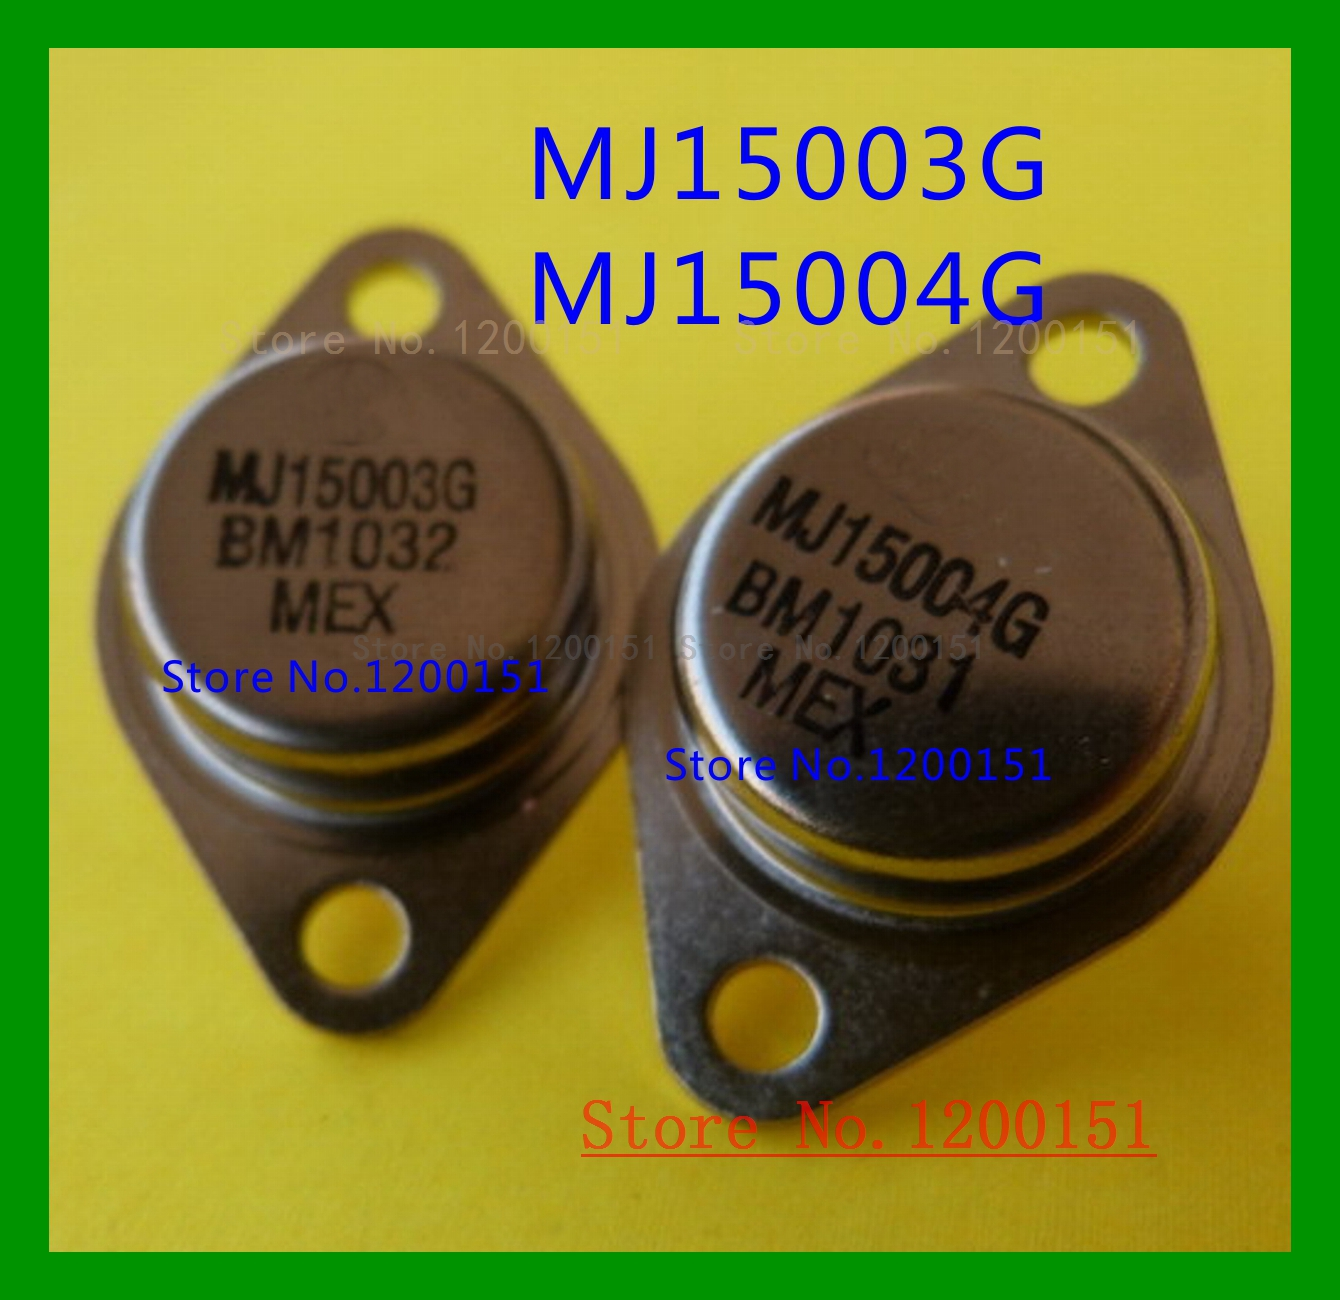 4pcs/lot=2PAIR MJ15003G MJ15004G MJ15003 MJ15004 TO-3 High Power Audio Power Amplifier Transistor